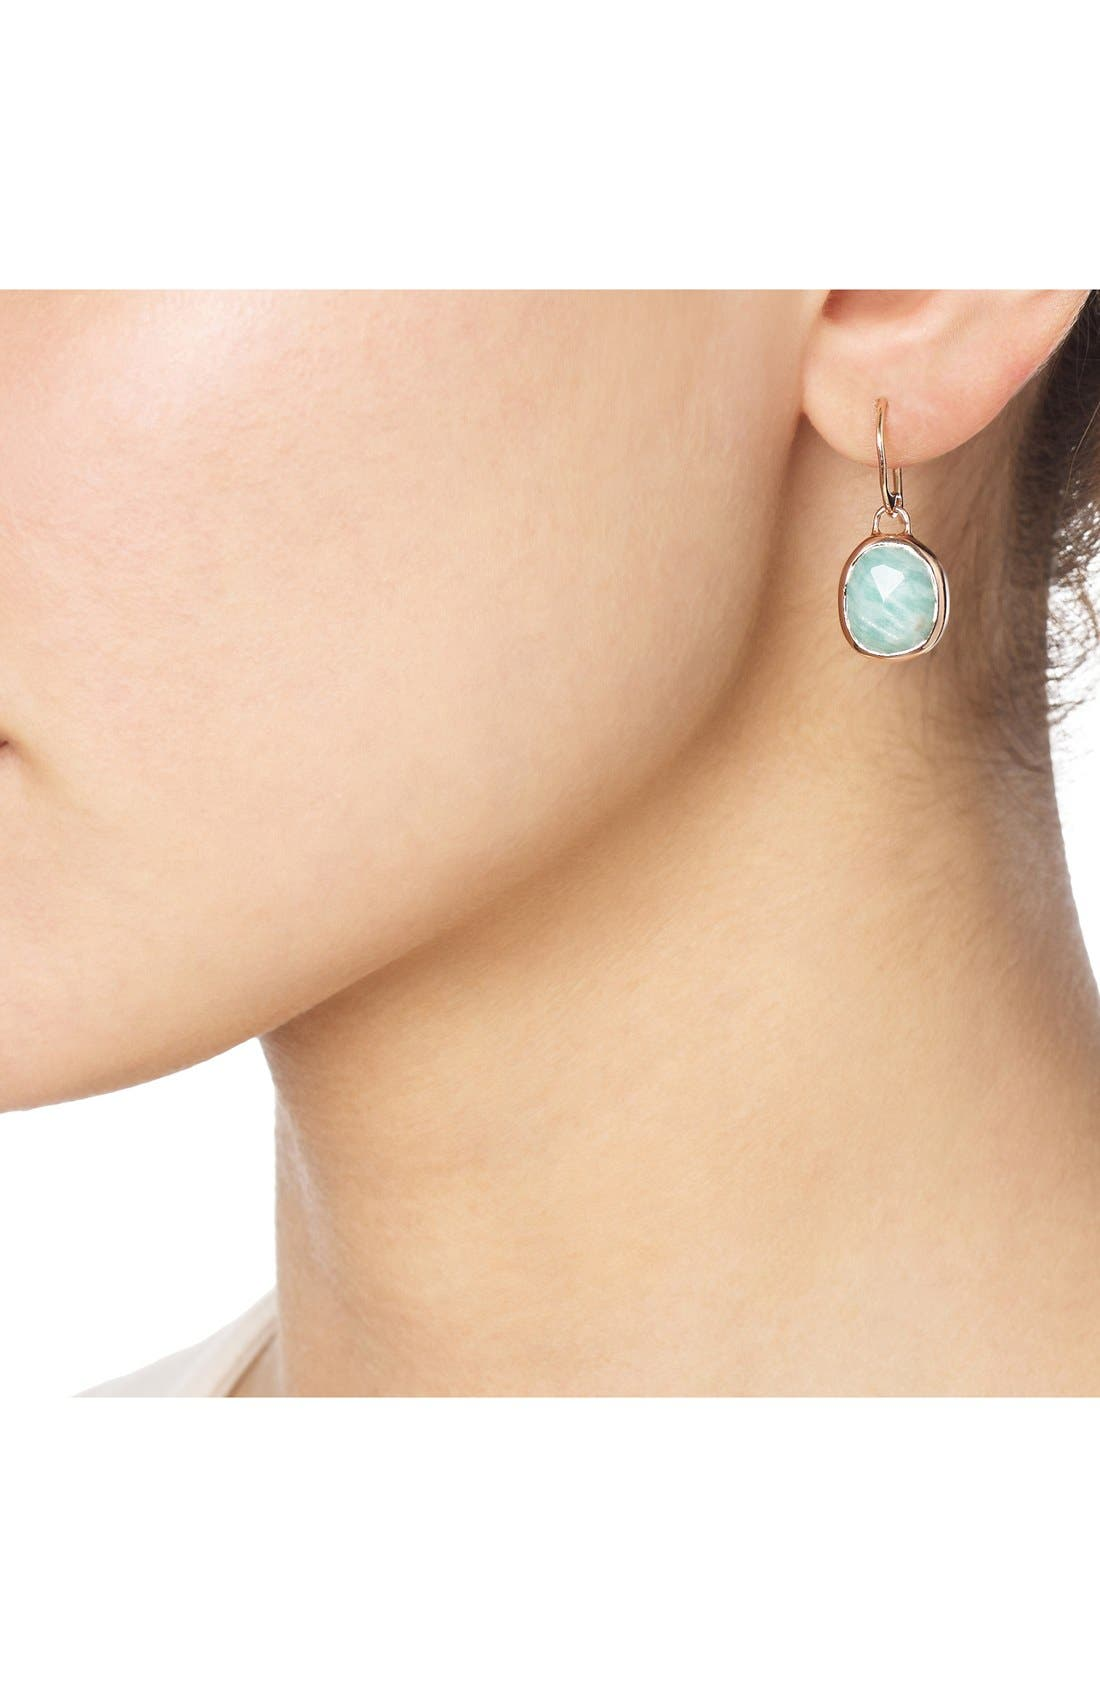 Siren Semiprecious Stone Drop Earrings,                             Alternate thumbnail 4, color,                             AMAZONITE/ ROSE GOLD